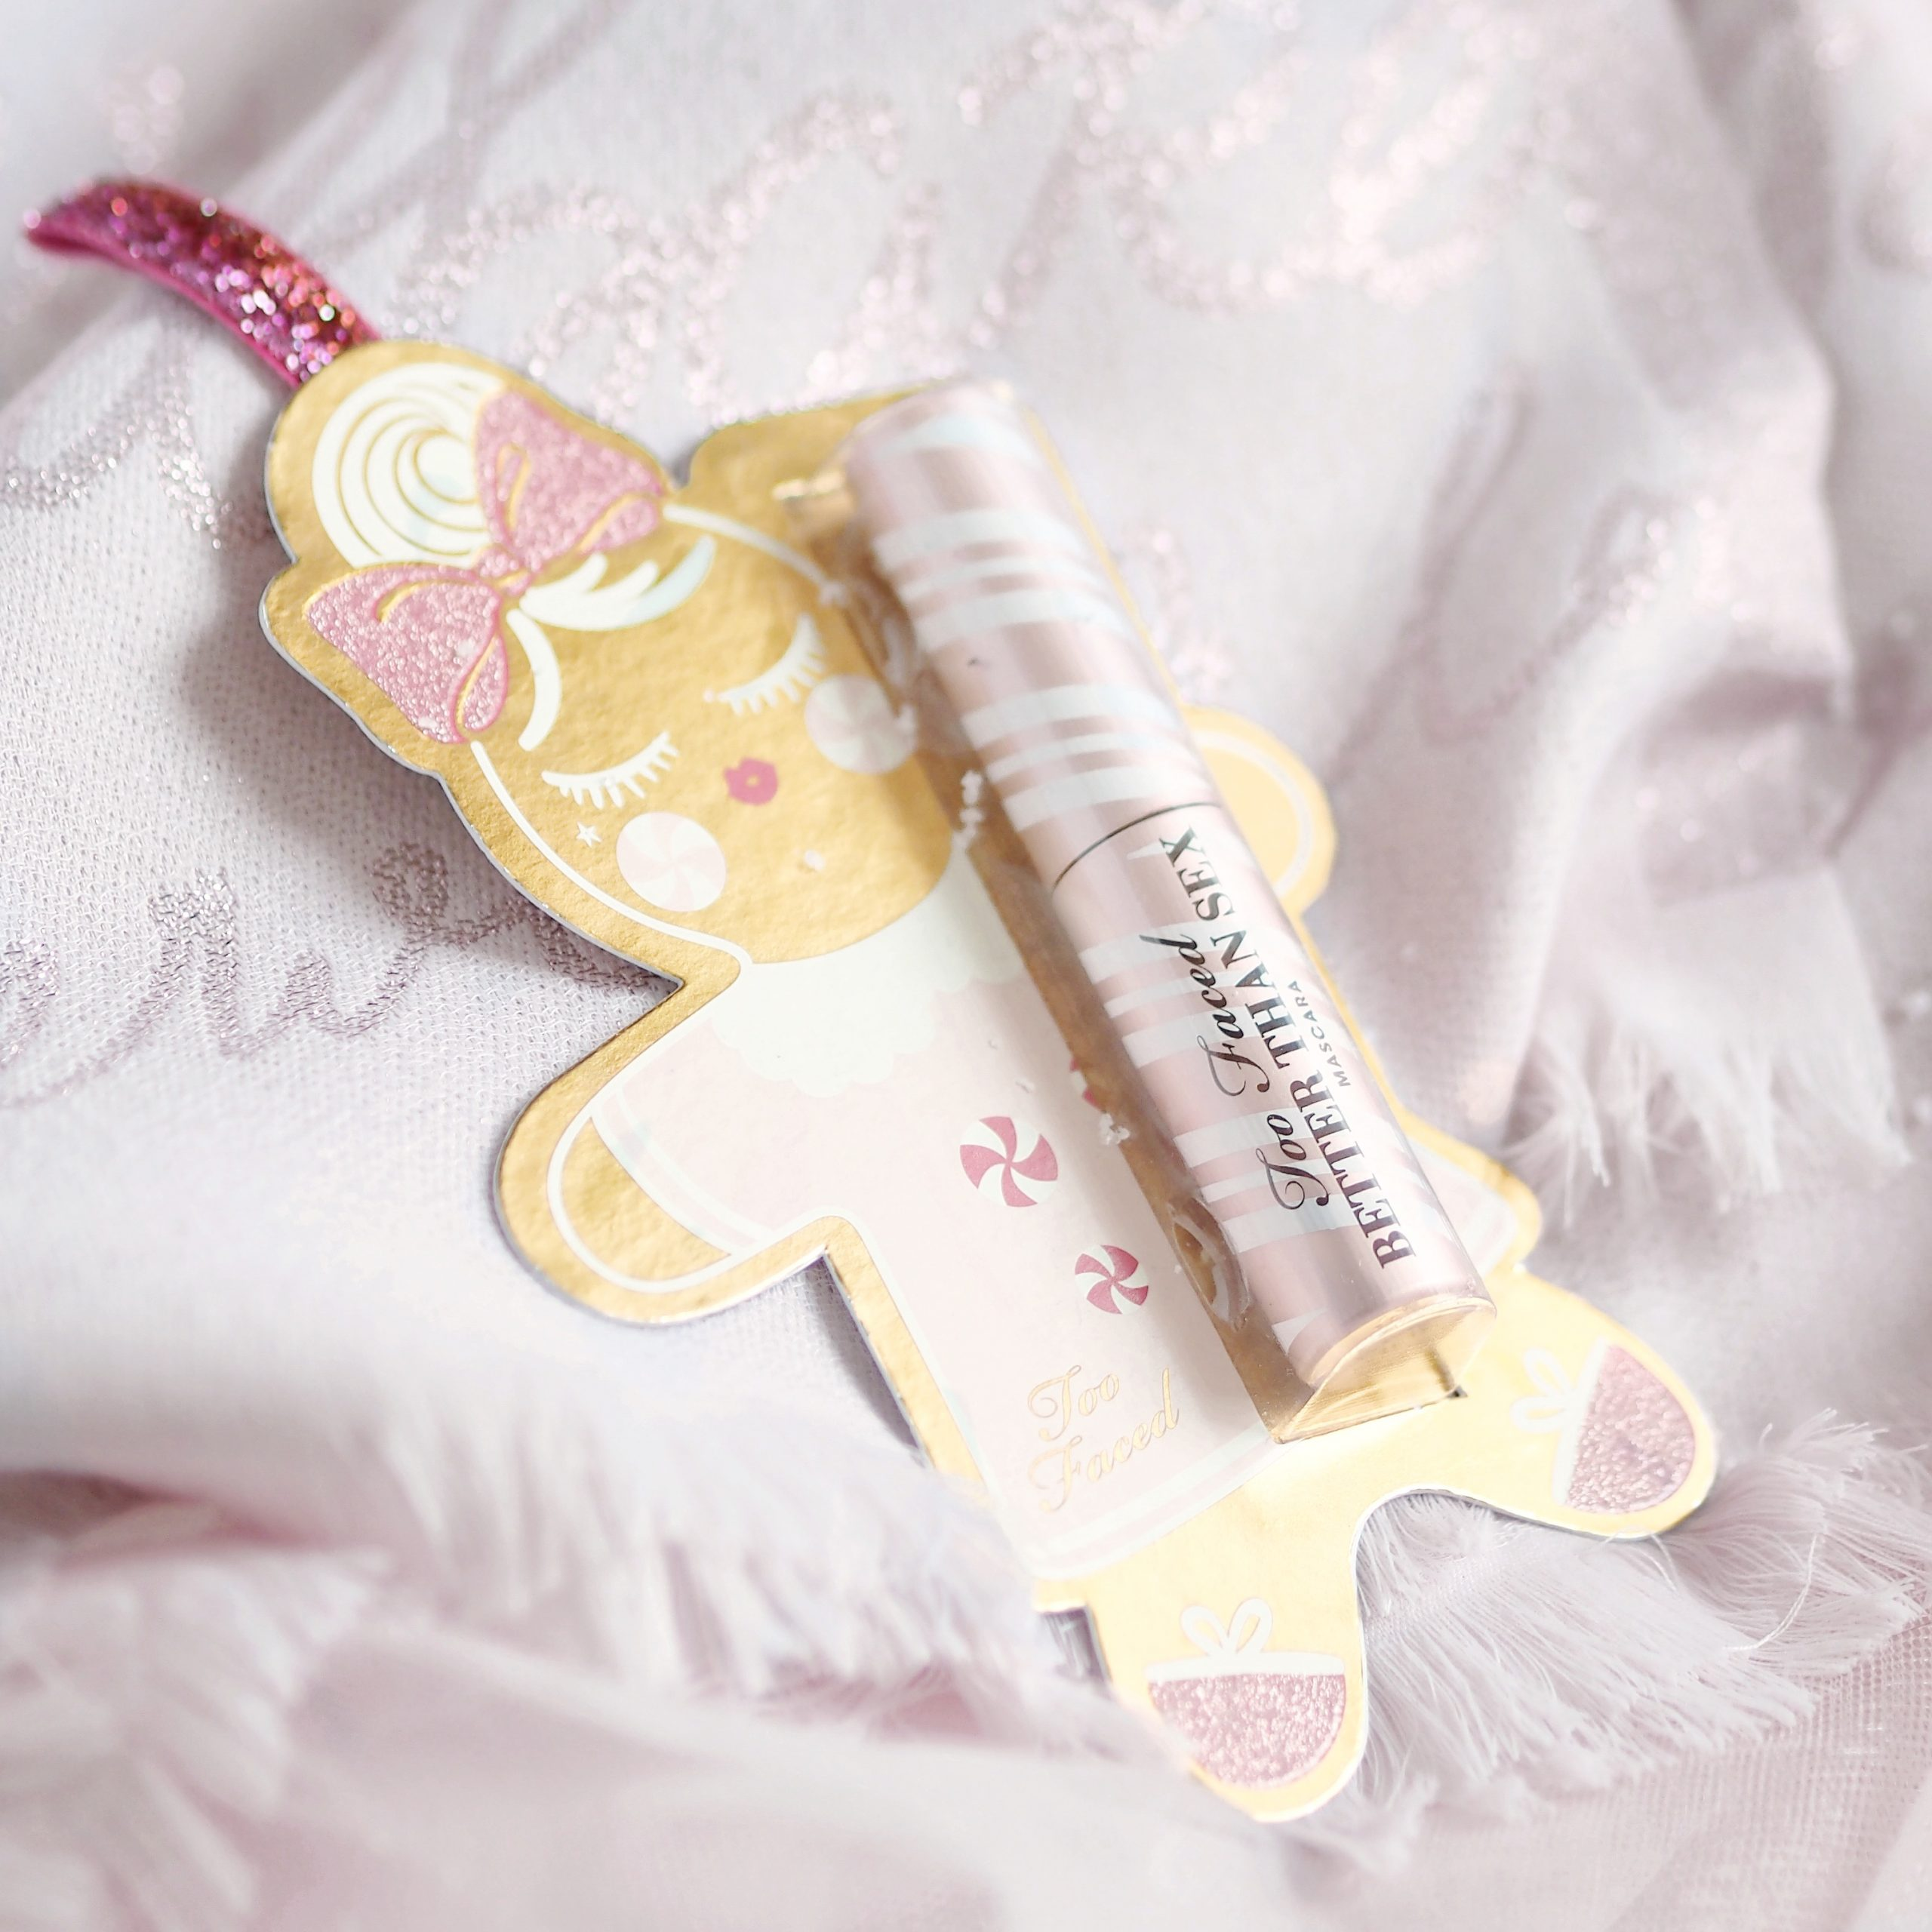 Too Faced Candy Cane Mascara Ornament | Perfectly Pretty Christmas Gift Ideas